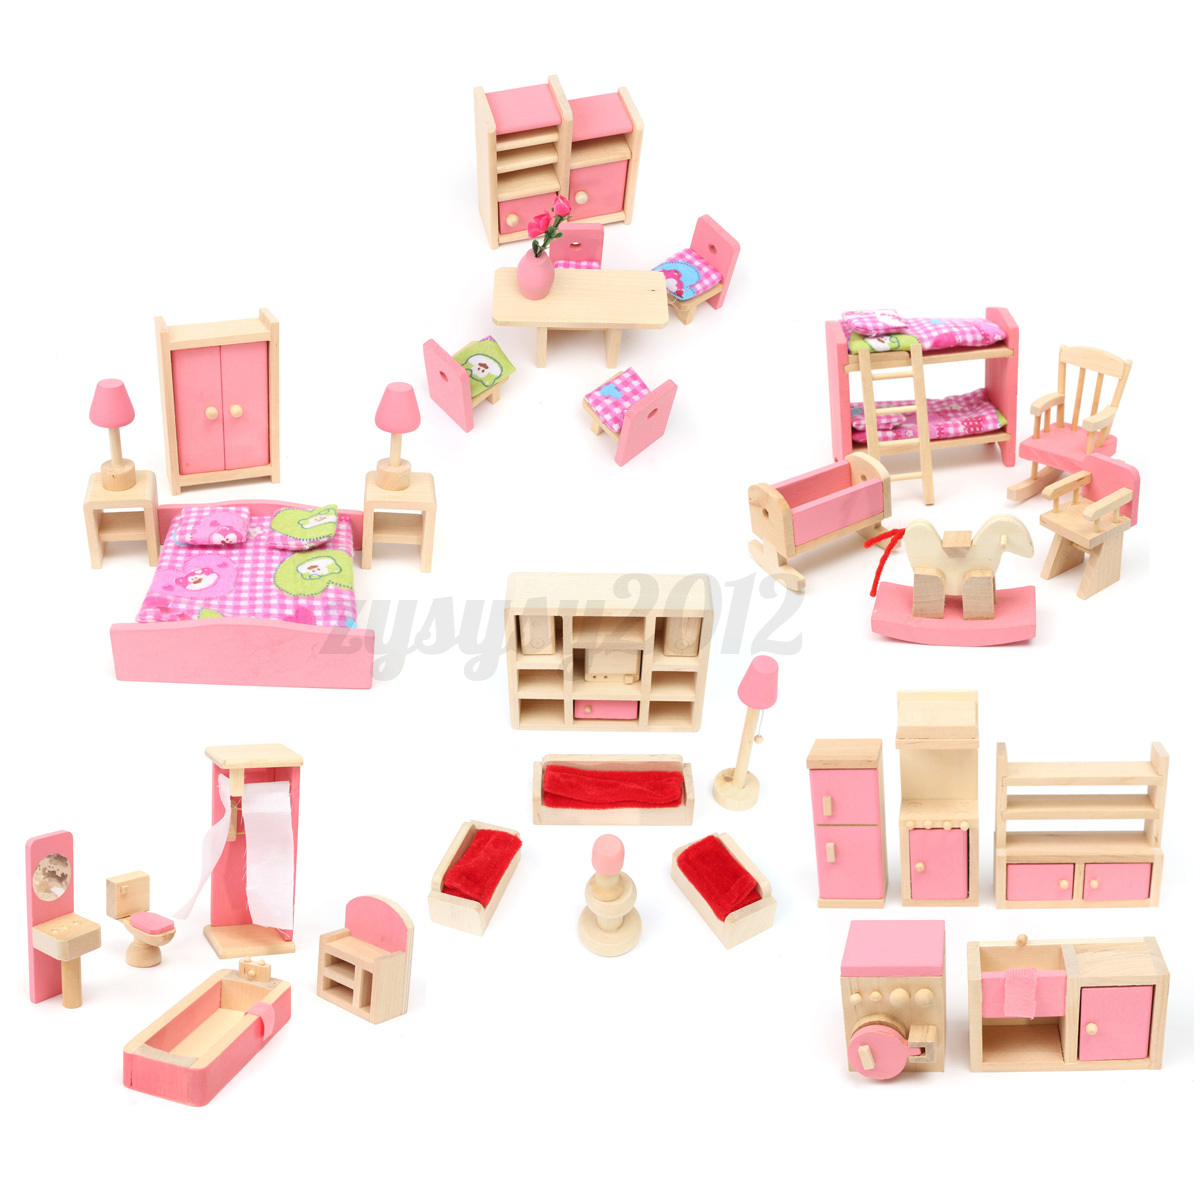 6 set rooms 6 dolls wooden furniture doll house family miniature kids children ebay Dolls wooden furniture